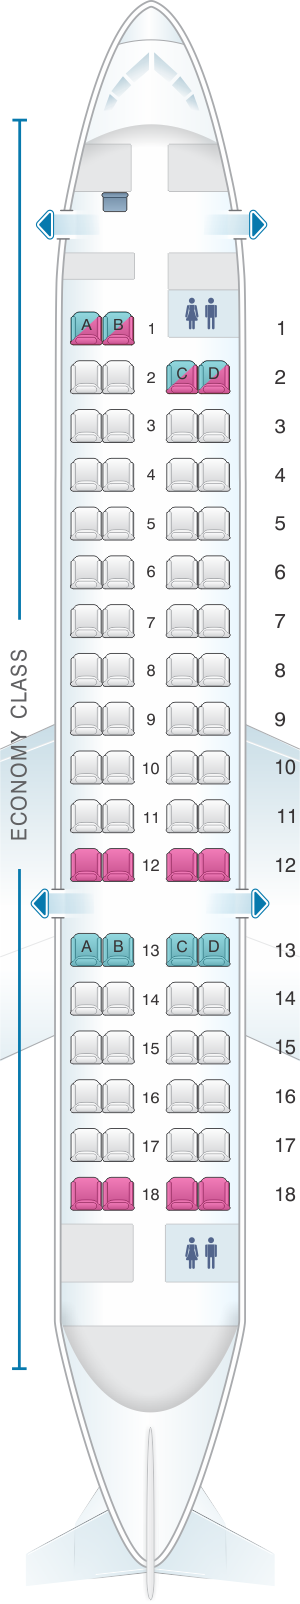 Seat map for Adria Airways Bombardier CRJ 700ER